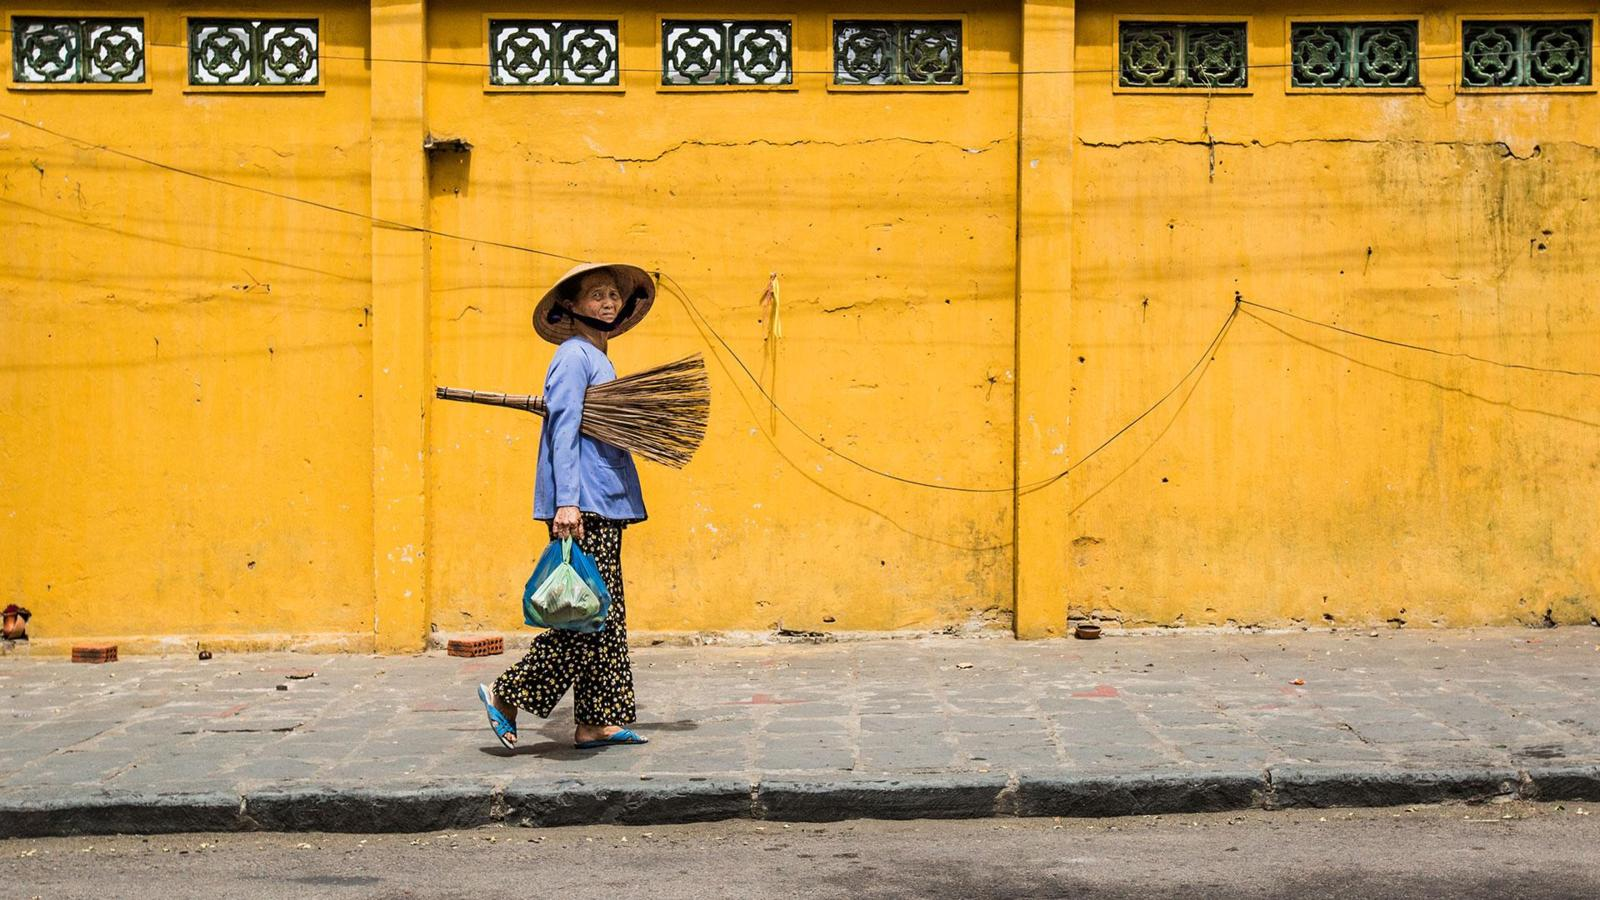 A bewitching town drenched in yellow - Ảnh minh hoạ 5